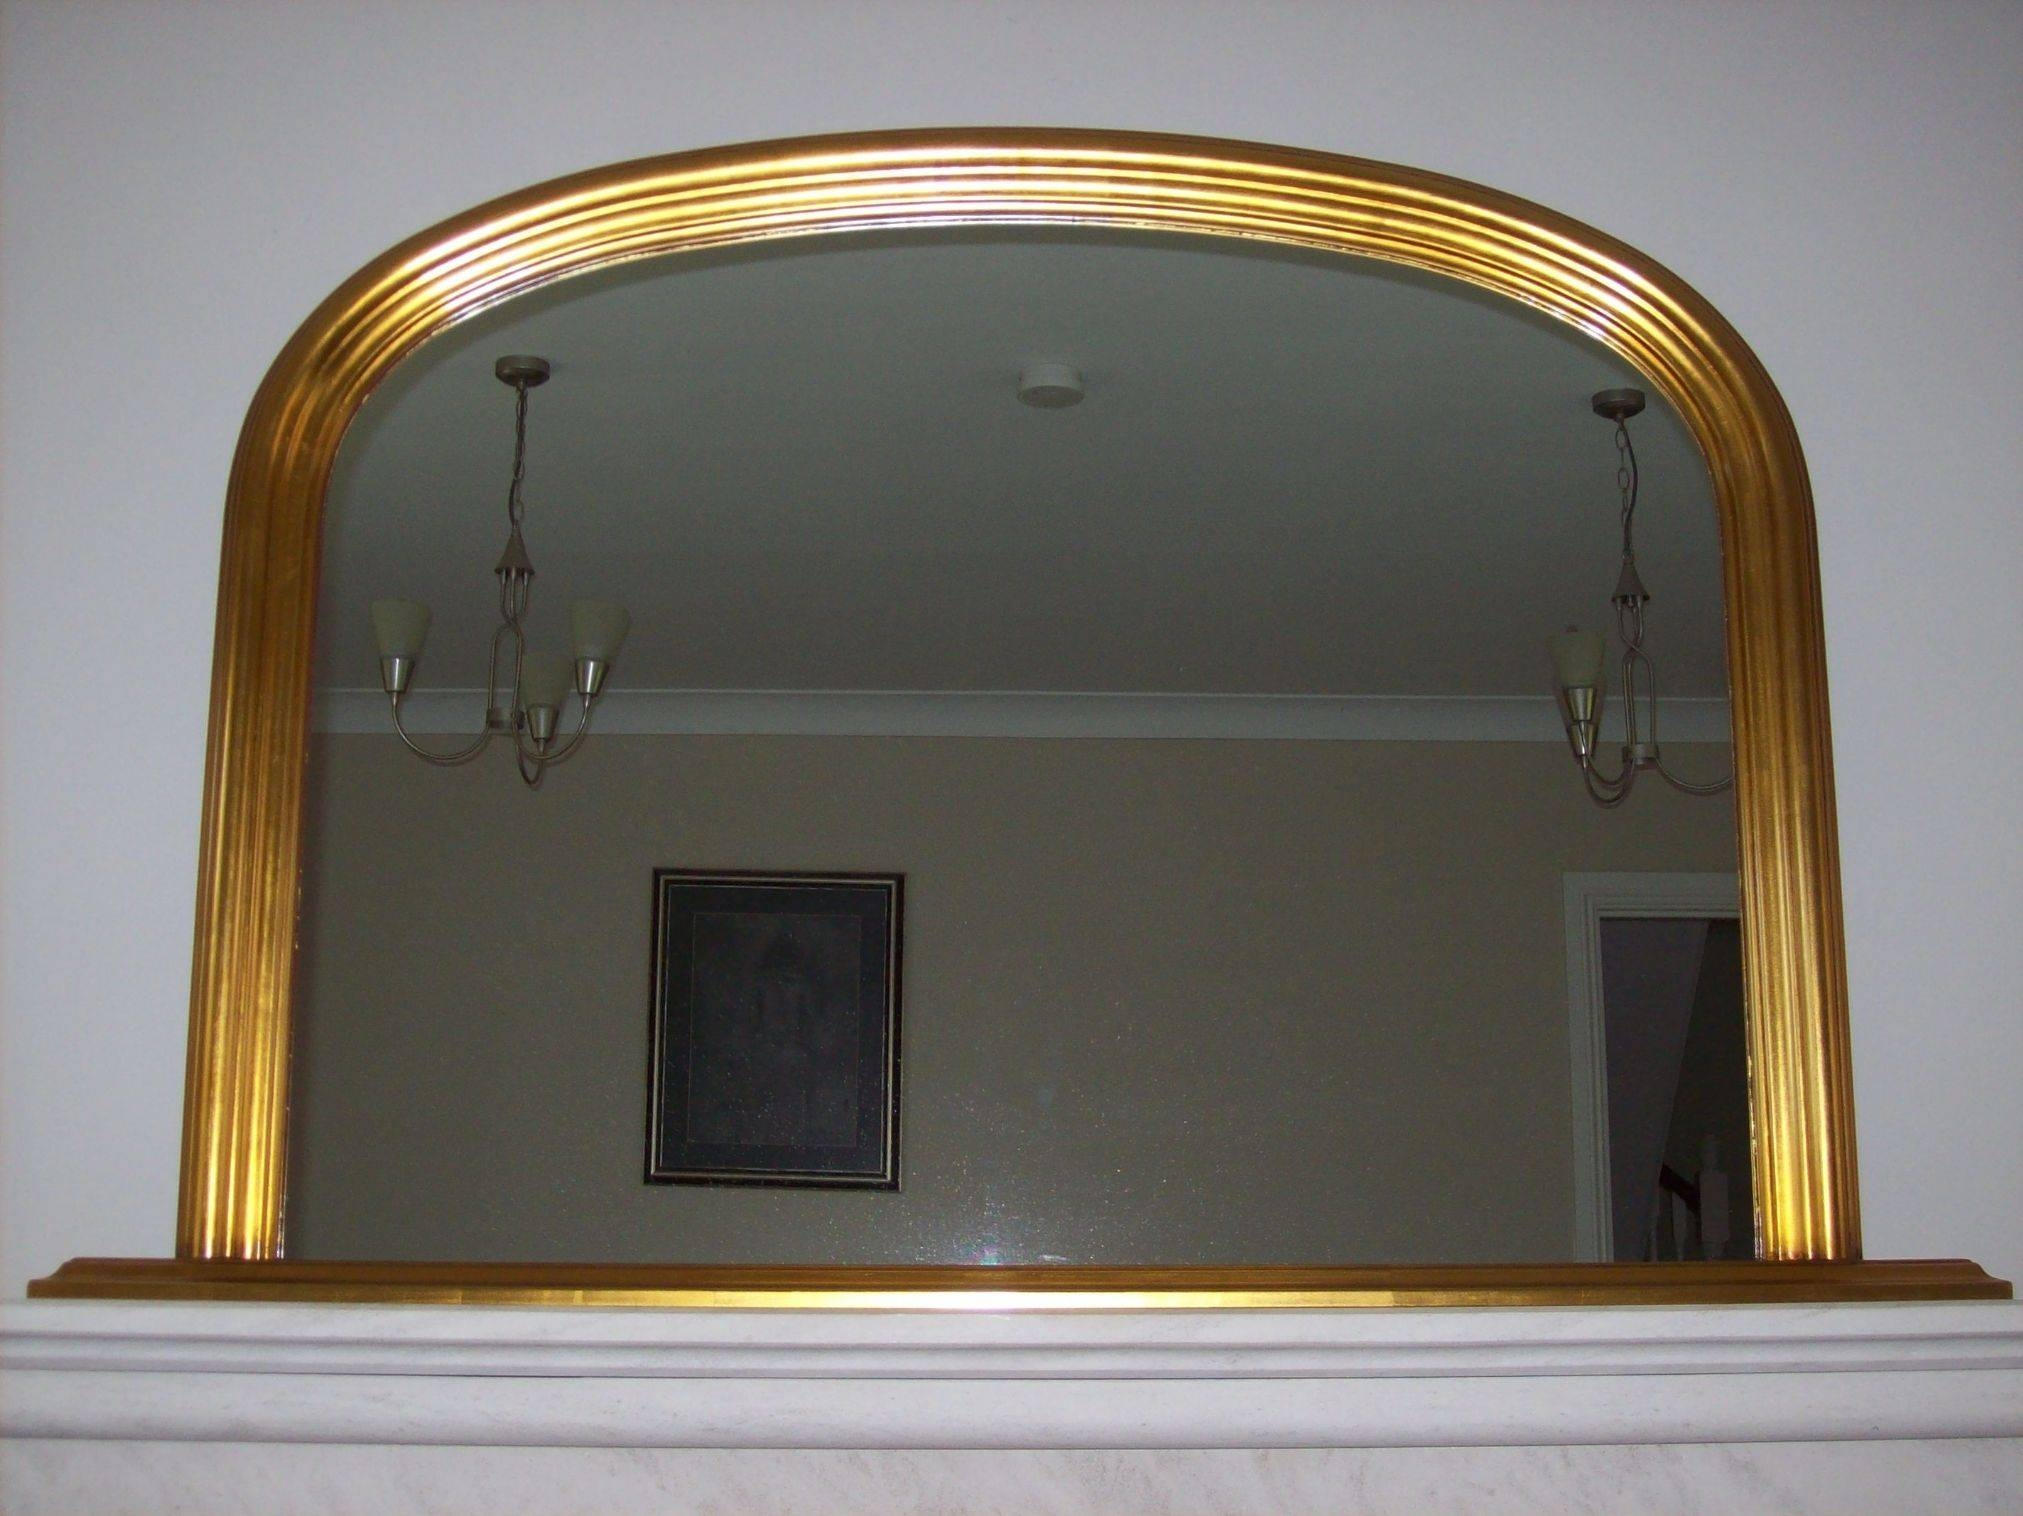 Gold Arched Overmantle Mirror intended for Overmantle Mirrors (Image 8 of 25)